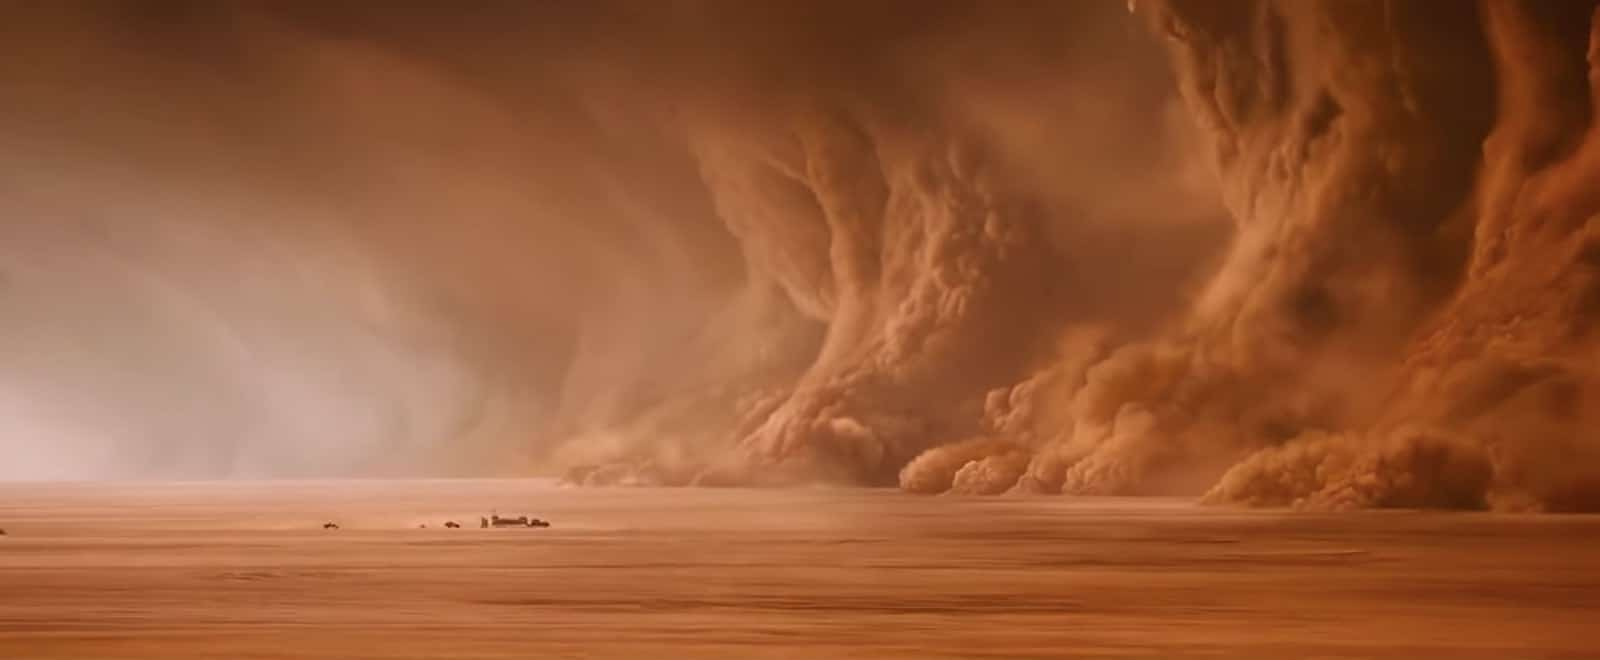 Camera Shot Guide - Extreme Wide Shot - Mad Mad Fury Road - StudioBinder